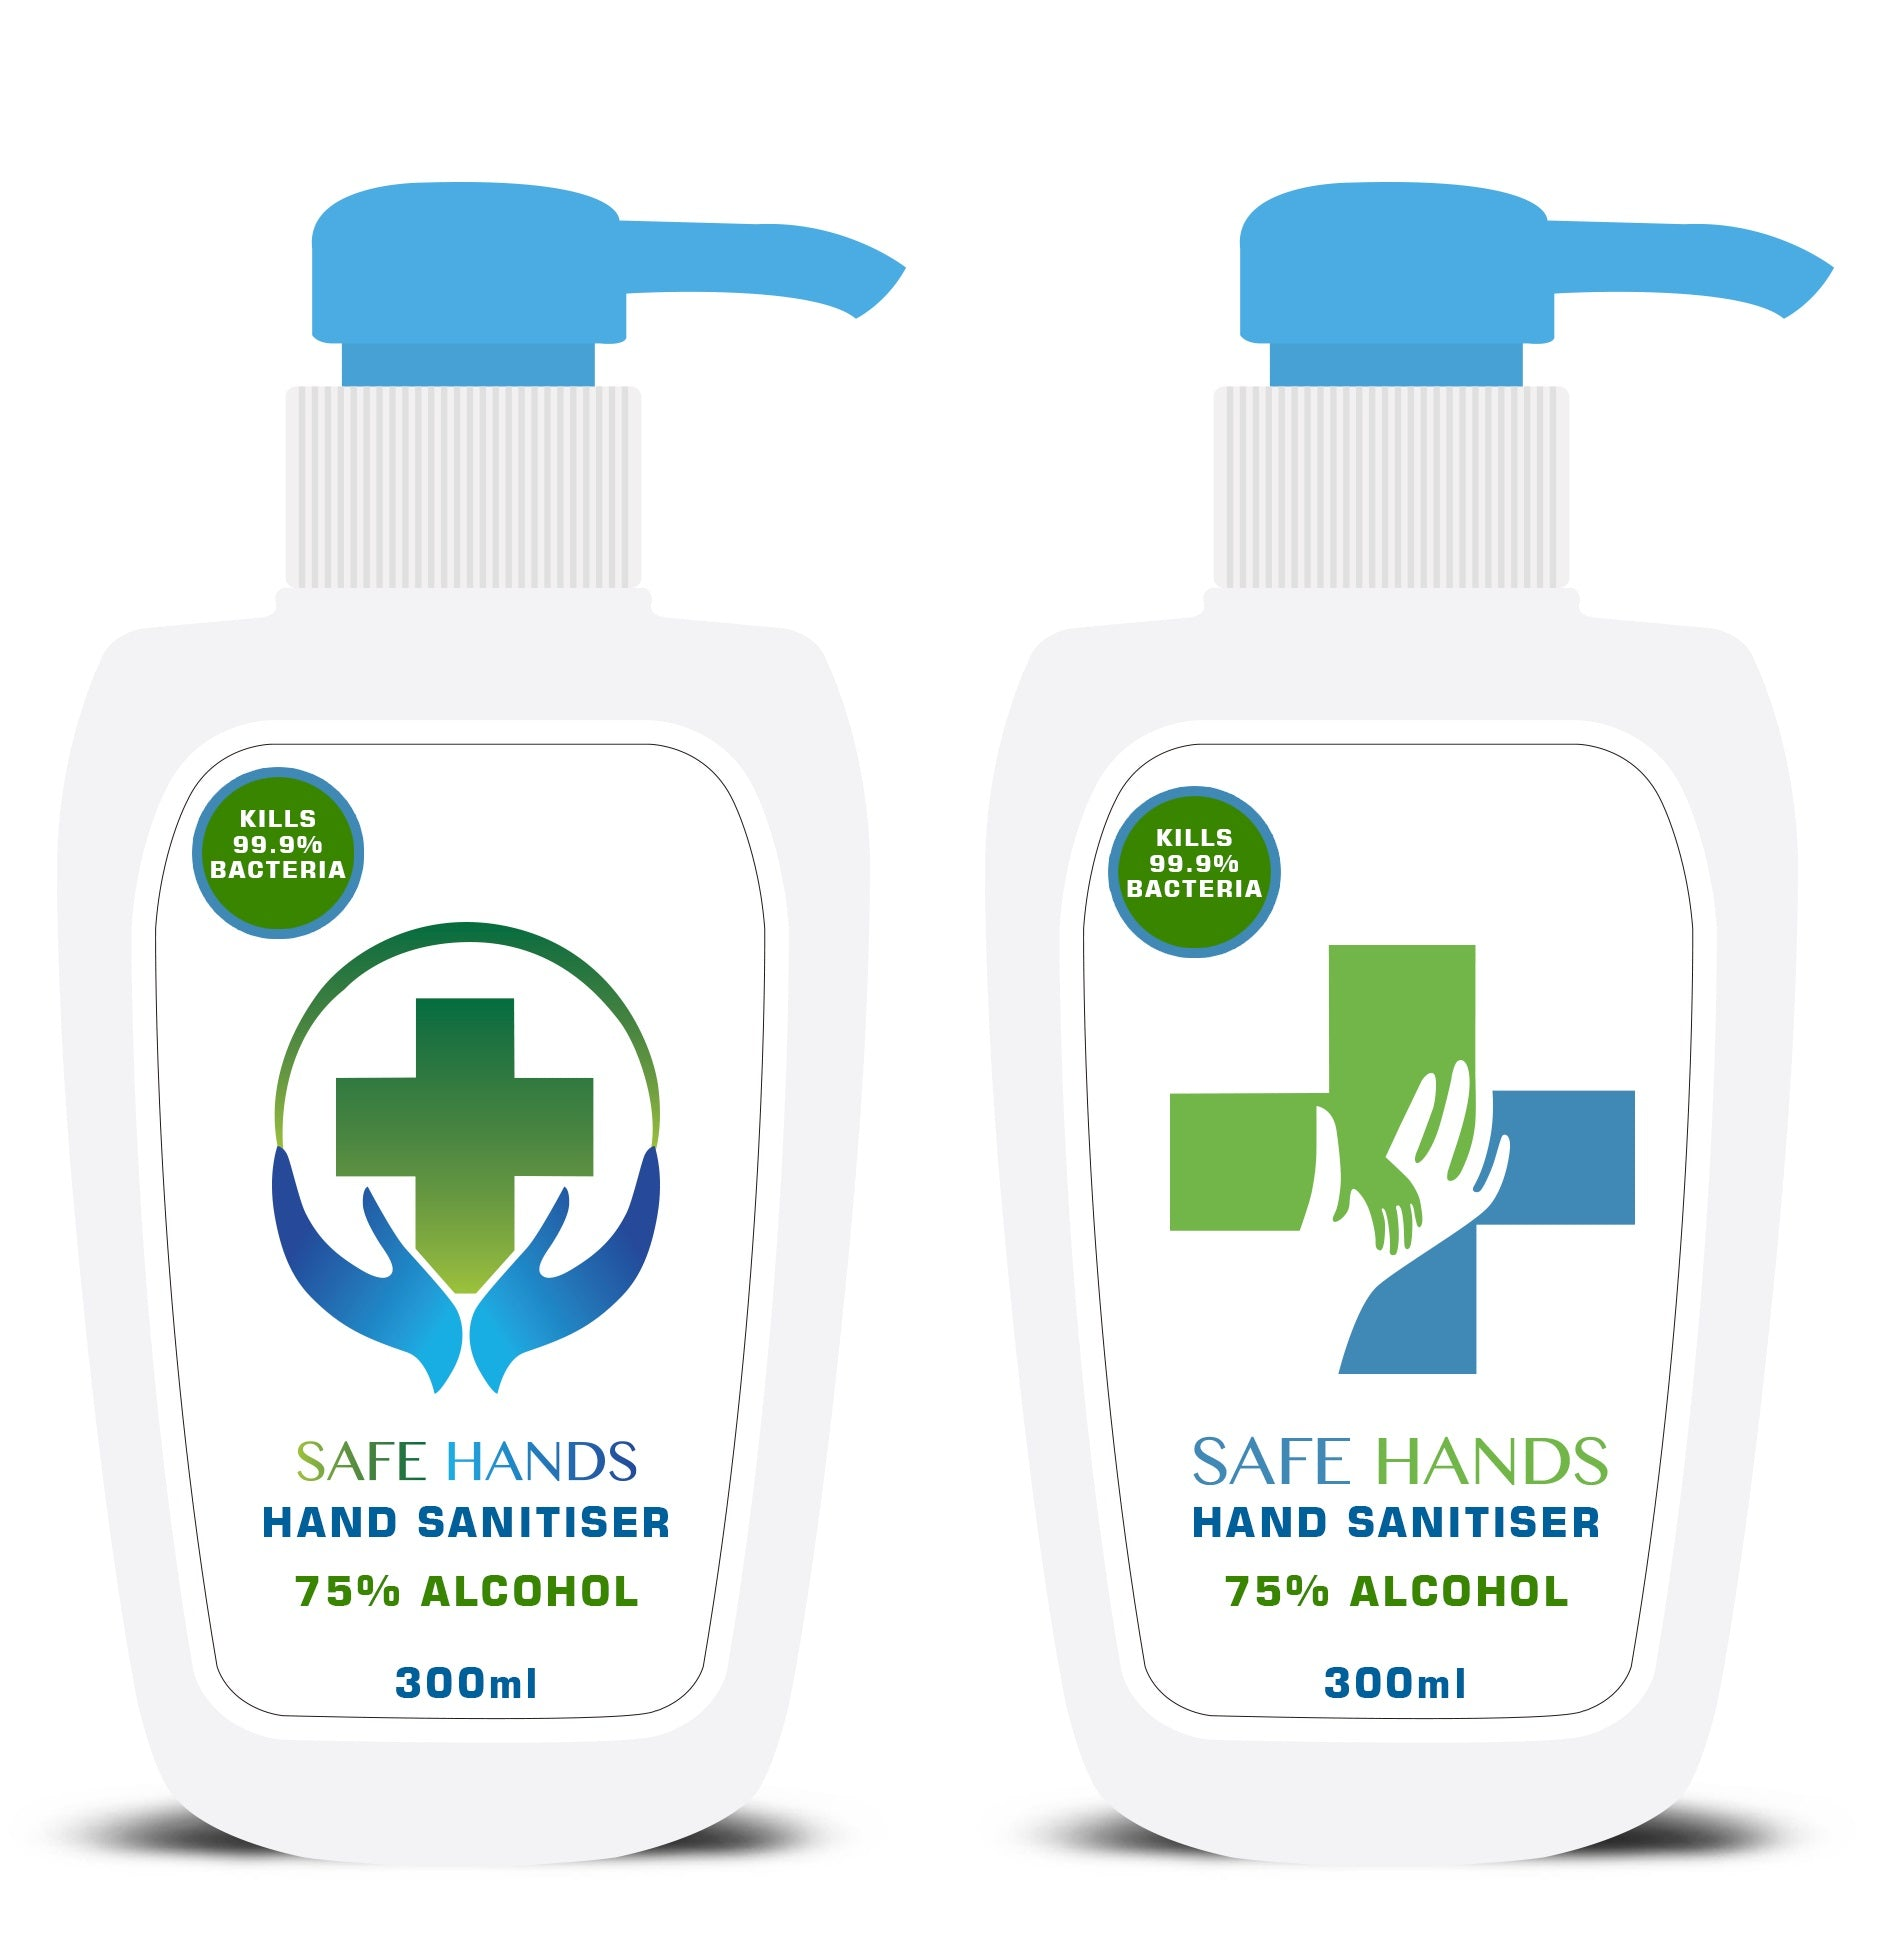 SAFE HANDS HAND SANITISER 300ML